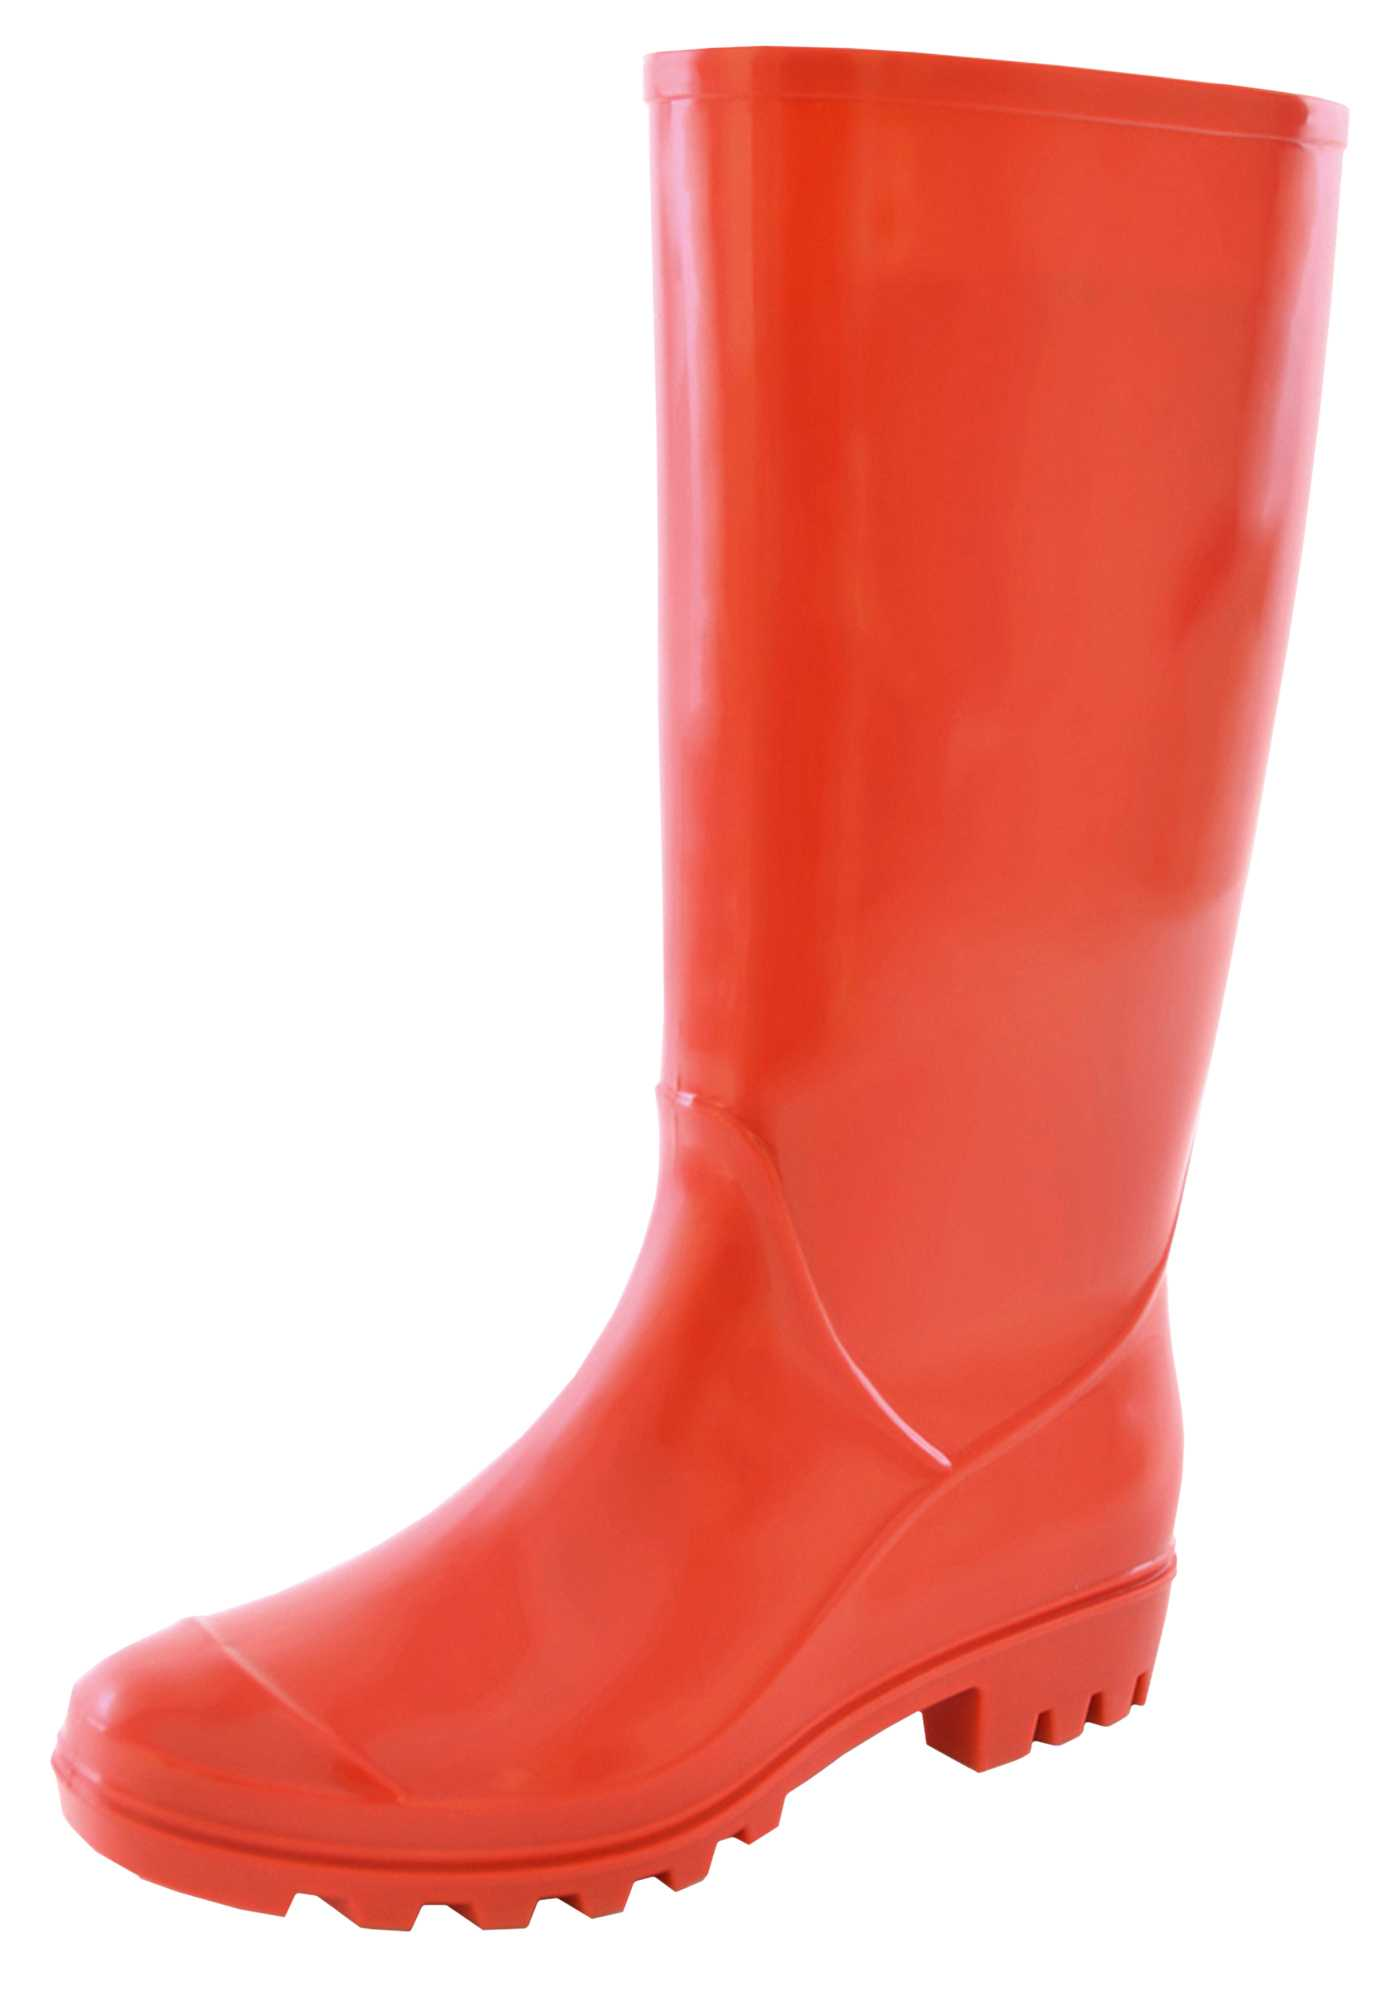 wellington boots printed snow winter boot